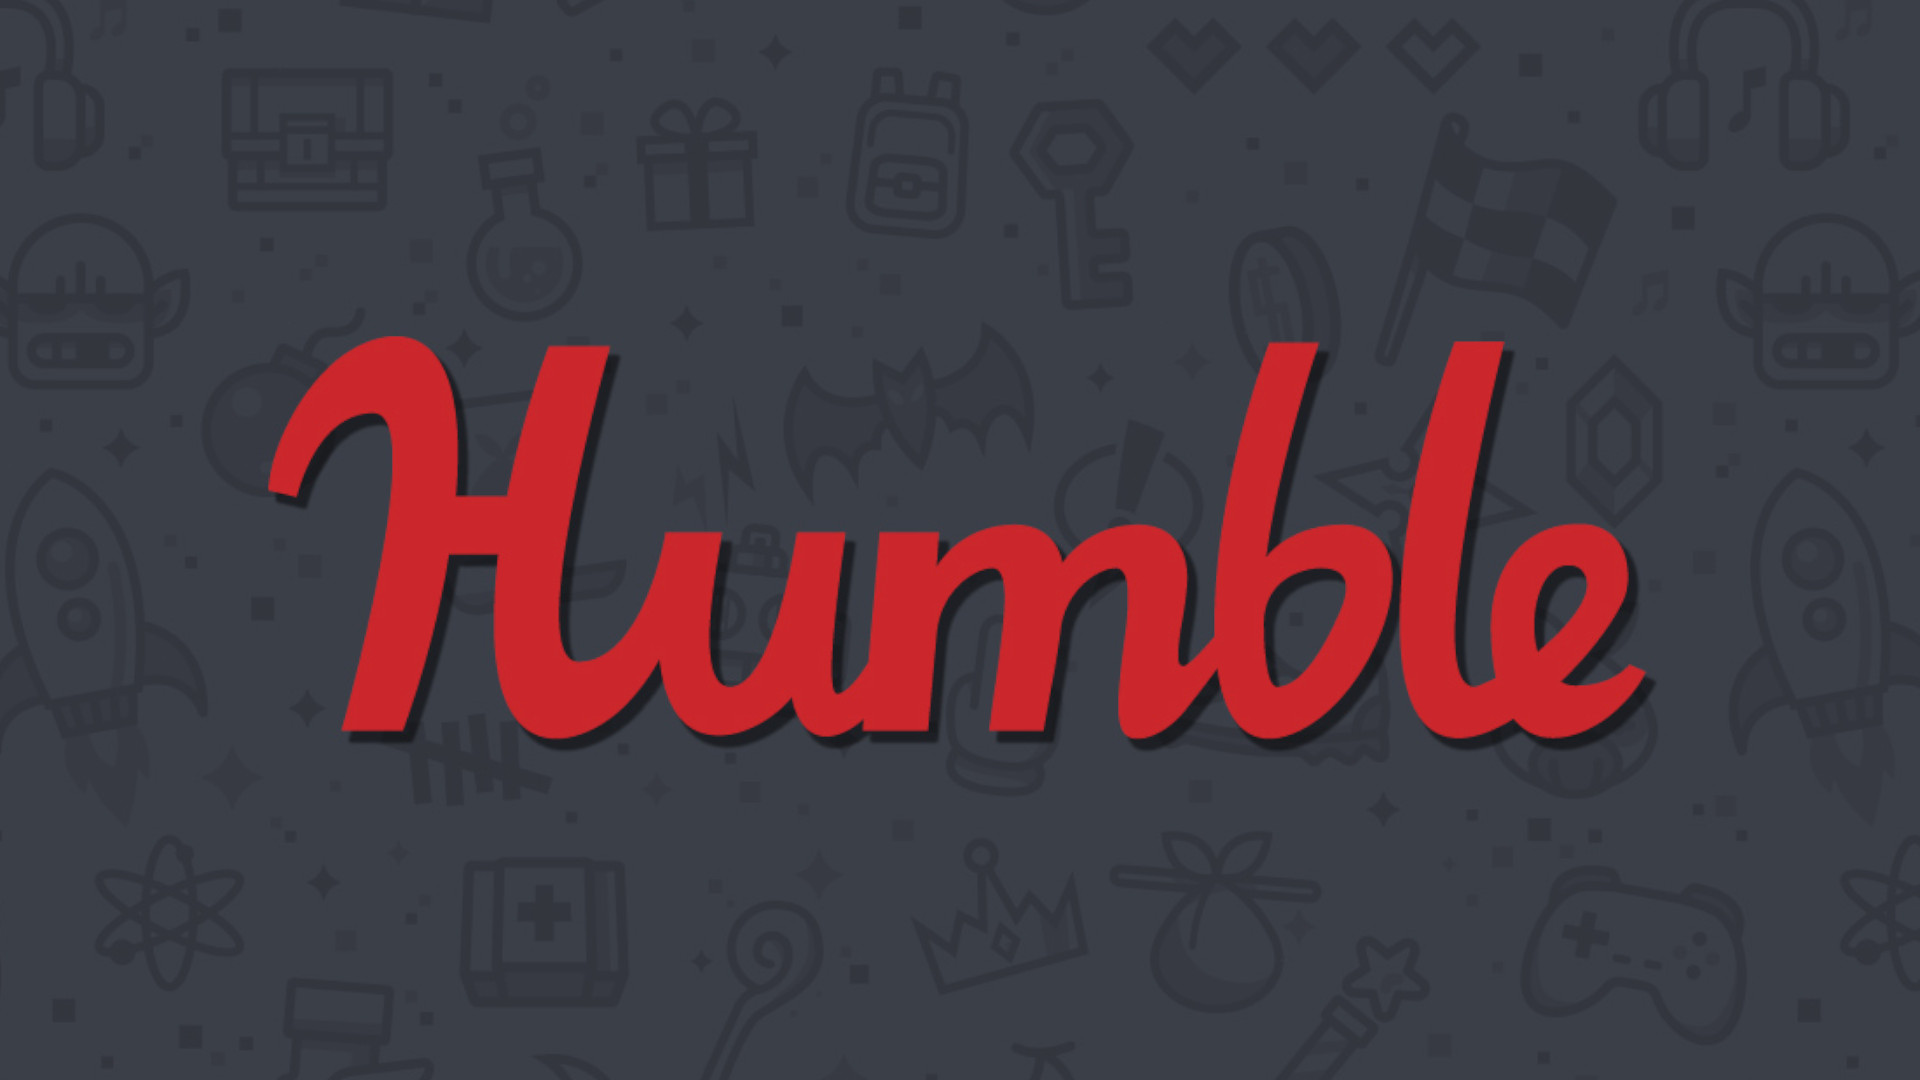 Humble Bundle ditches the sliders that let you choose your charity donation amount